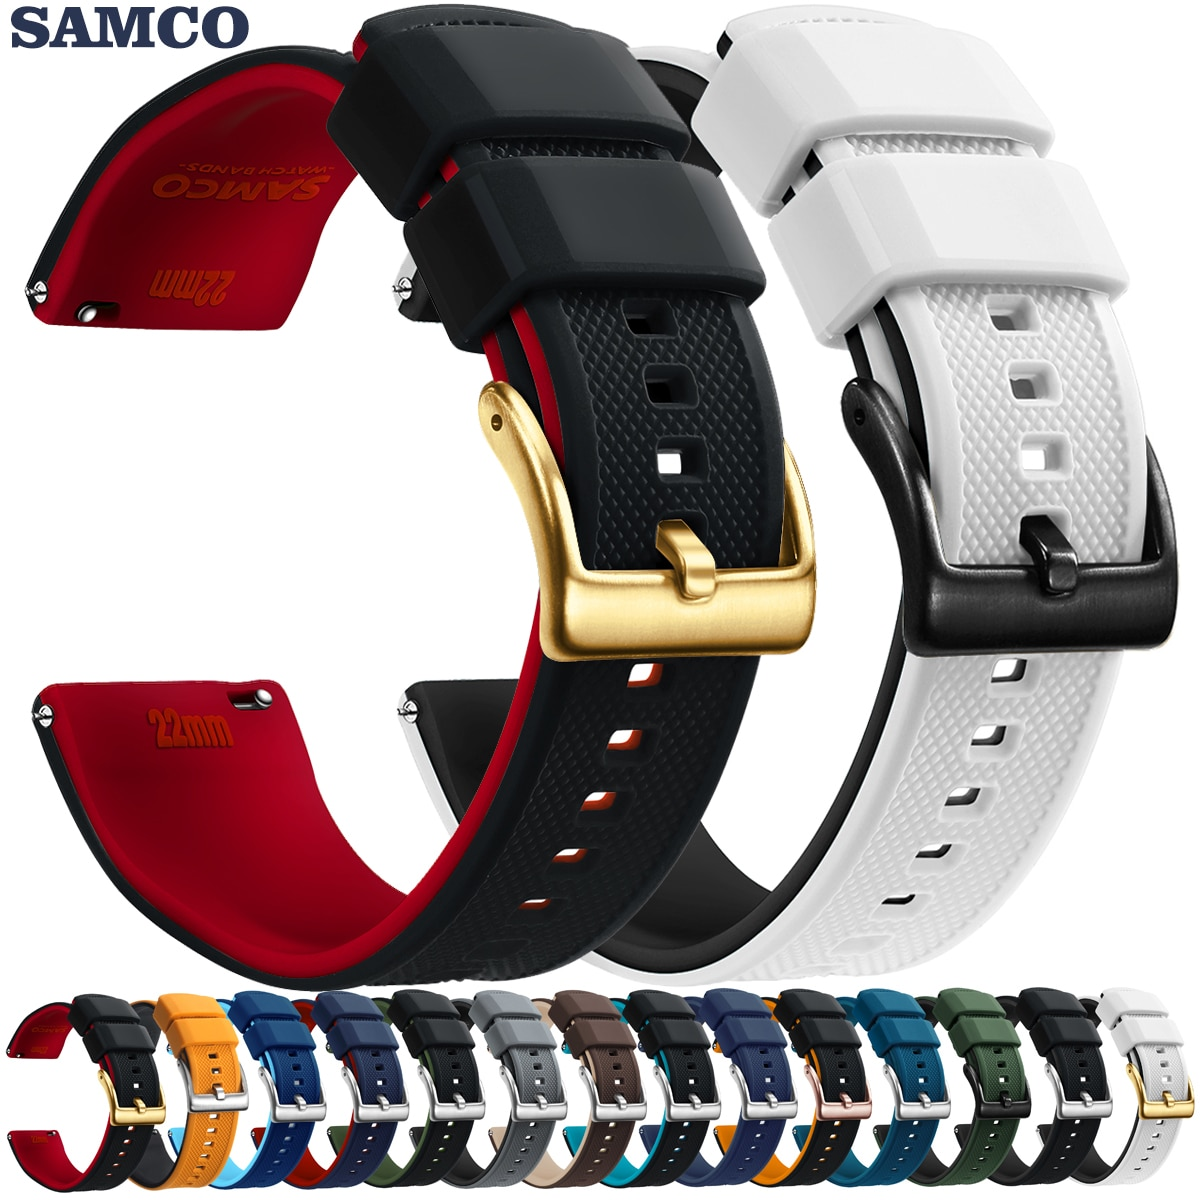 20mm coffee brown silicone jelly rubber unisex watch band straps wb1072s20jb Quick Release Rubber Watch Strap Silicone Watch Band 20mm 22mm  Huawei Samsung Garmin Watch Replacement Watchband